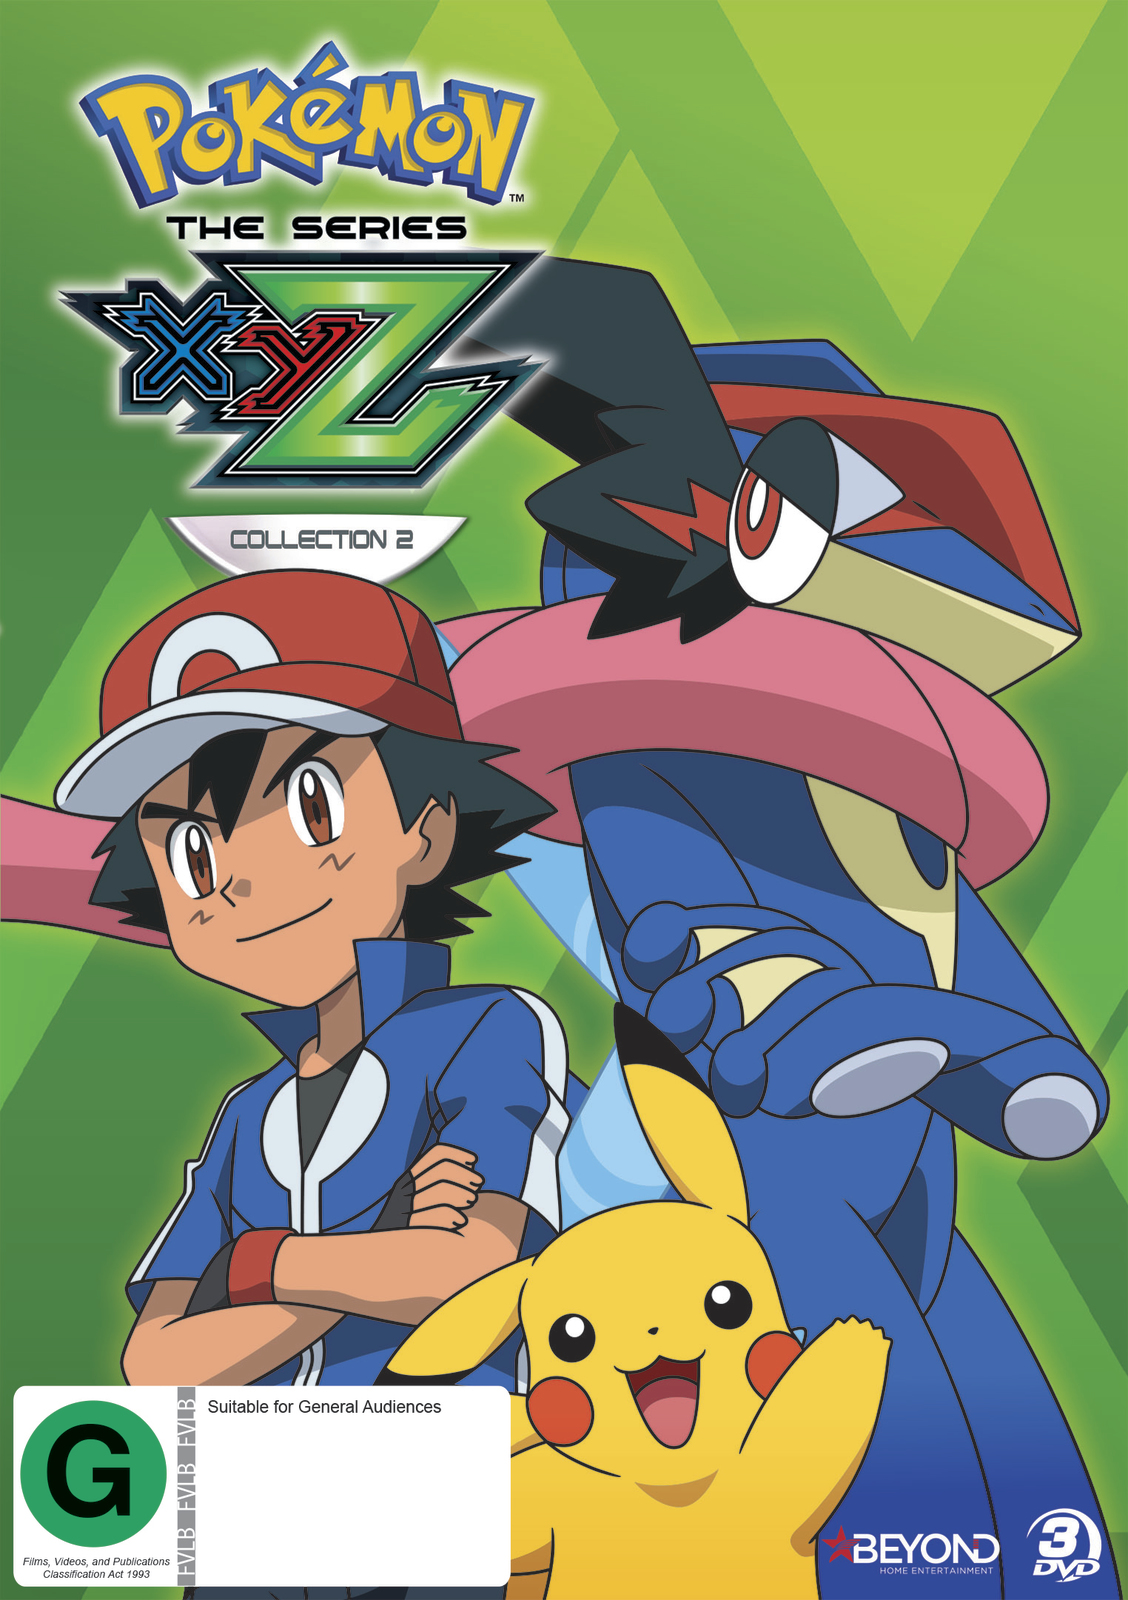 pokemon the series xyz collection 2 dvd in stock buy now